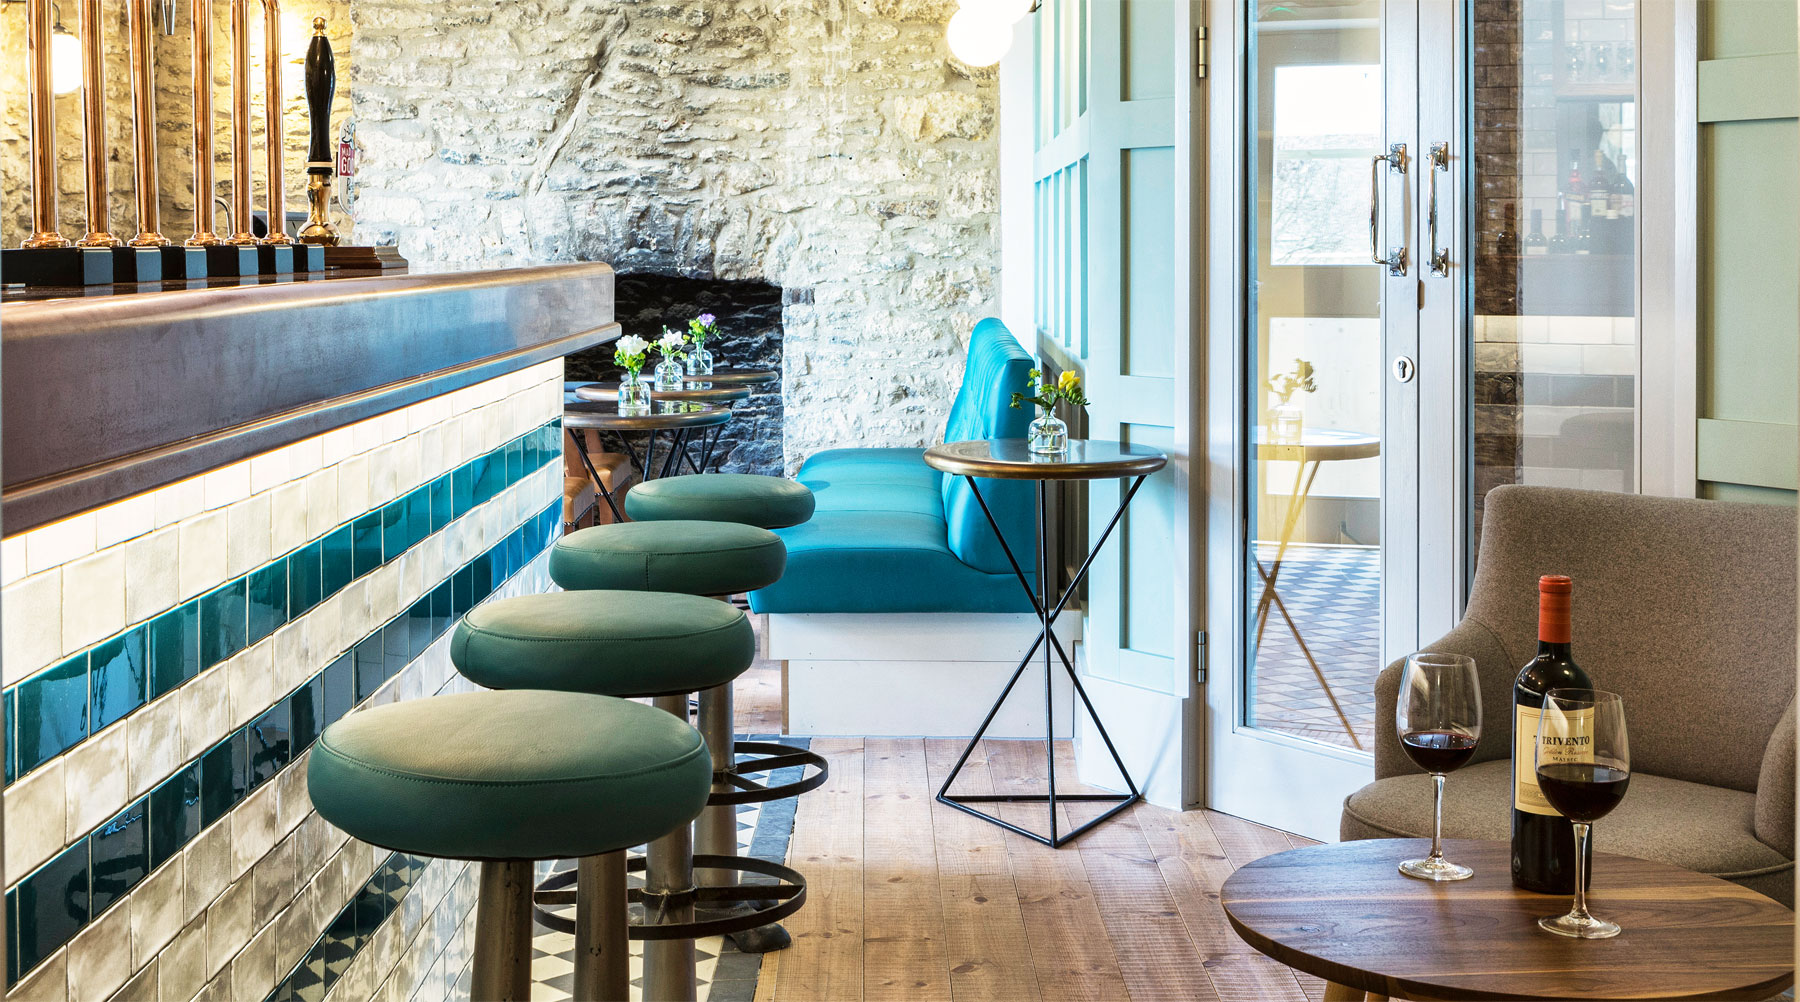 The Old Stocks Inn: A Scandi-Cool Sanctuary In The Postcard-Perfect Cotswolds